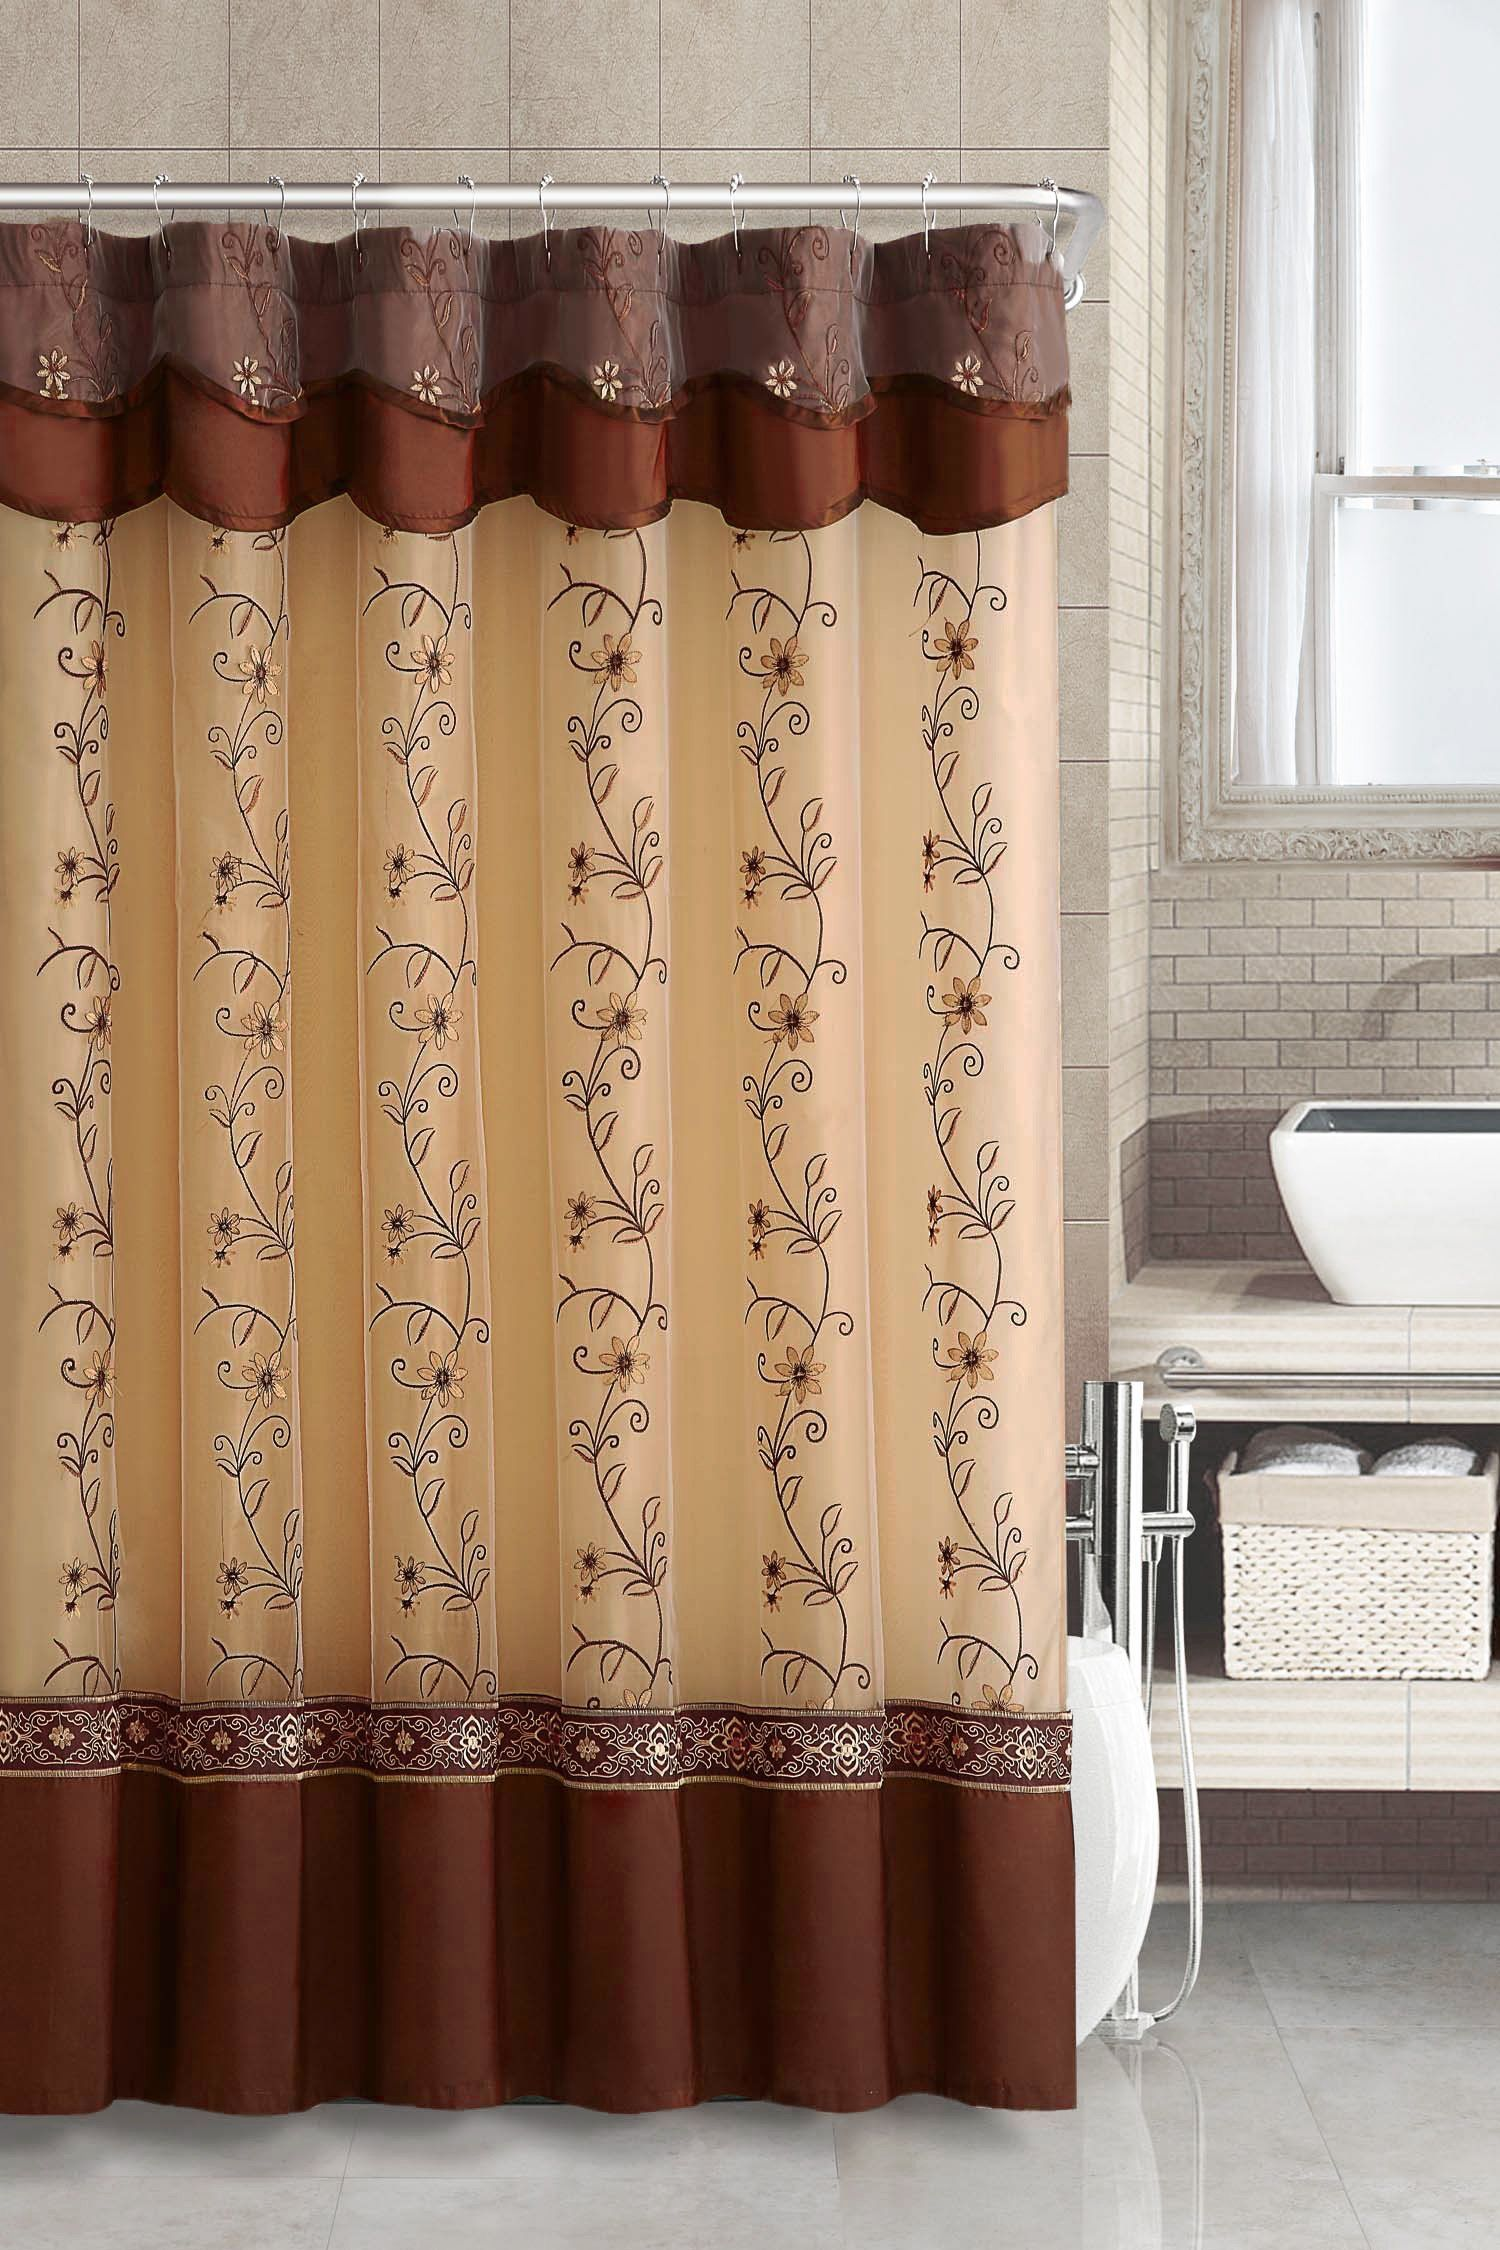 Amazon Com Two Layered Embroidered Fabric Shower Curtain With Attached Valance Cinnamon Fabric Shower Curtains Brown Shower Curtain Curtains